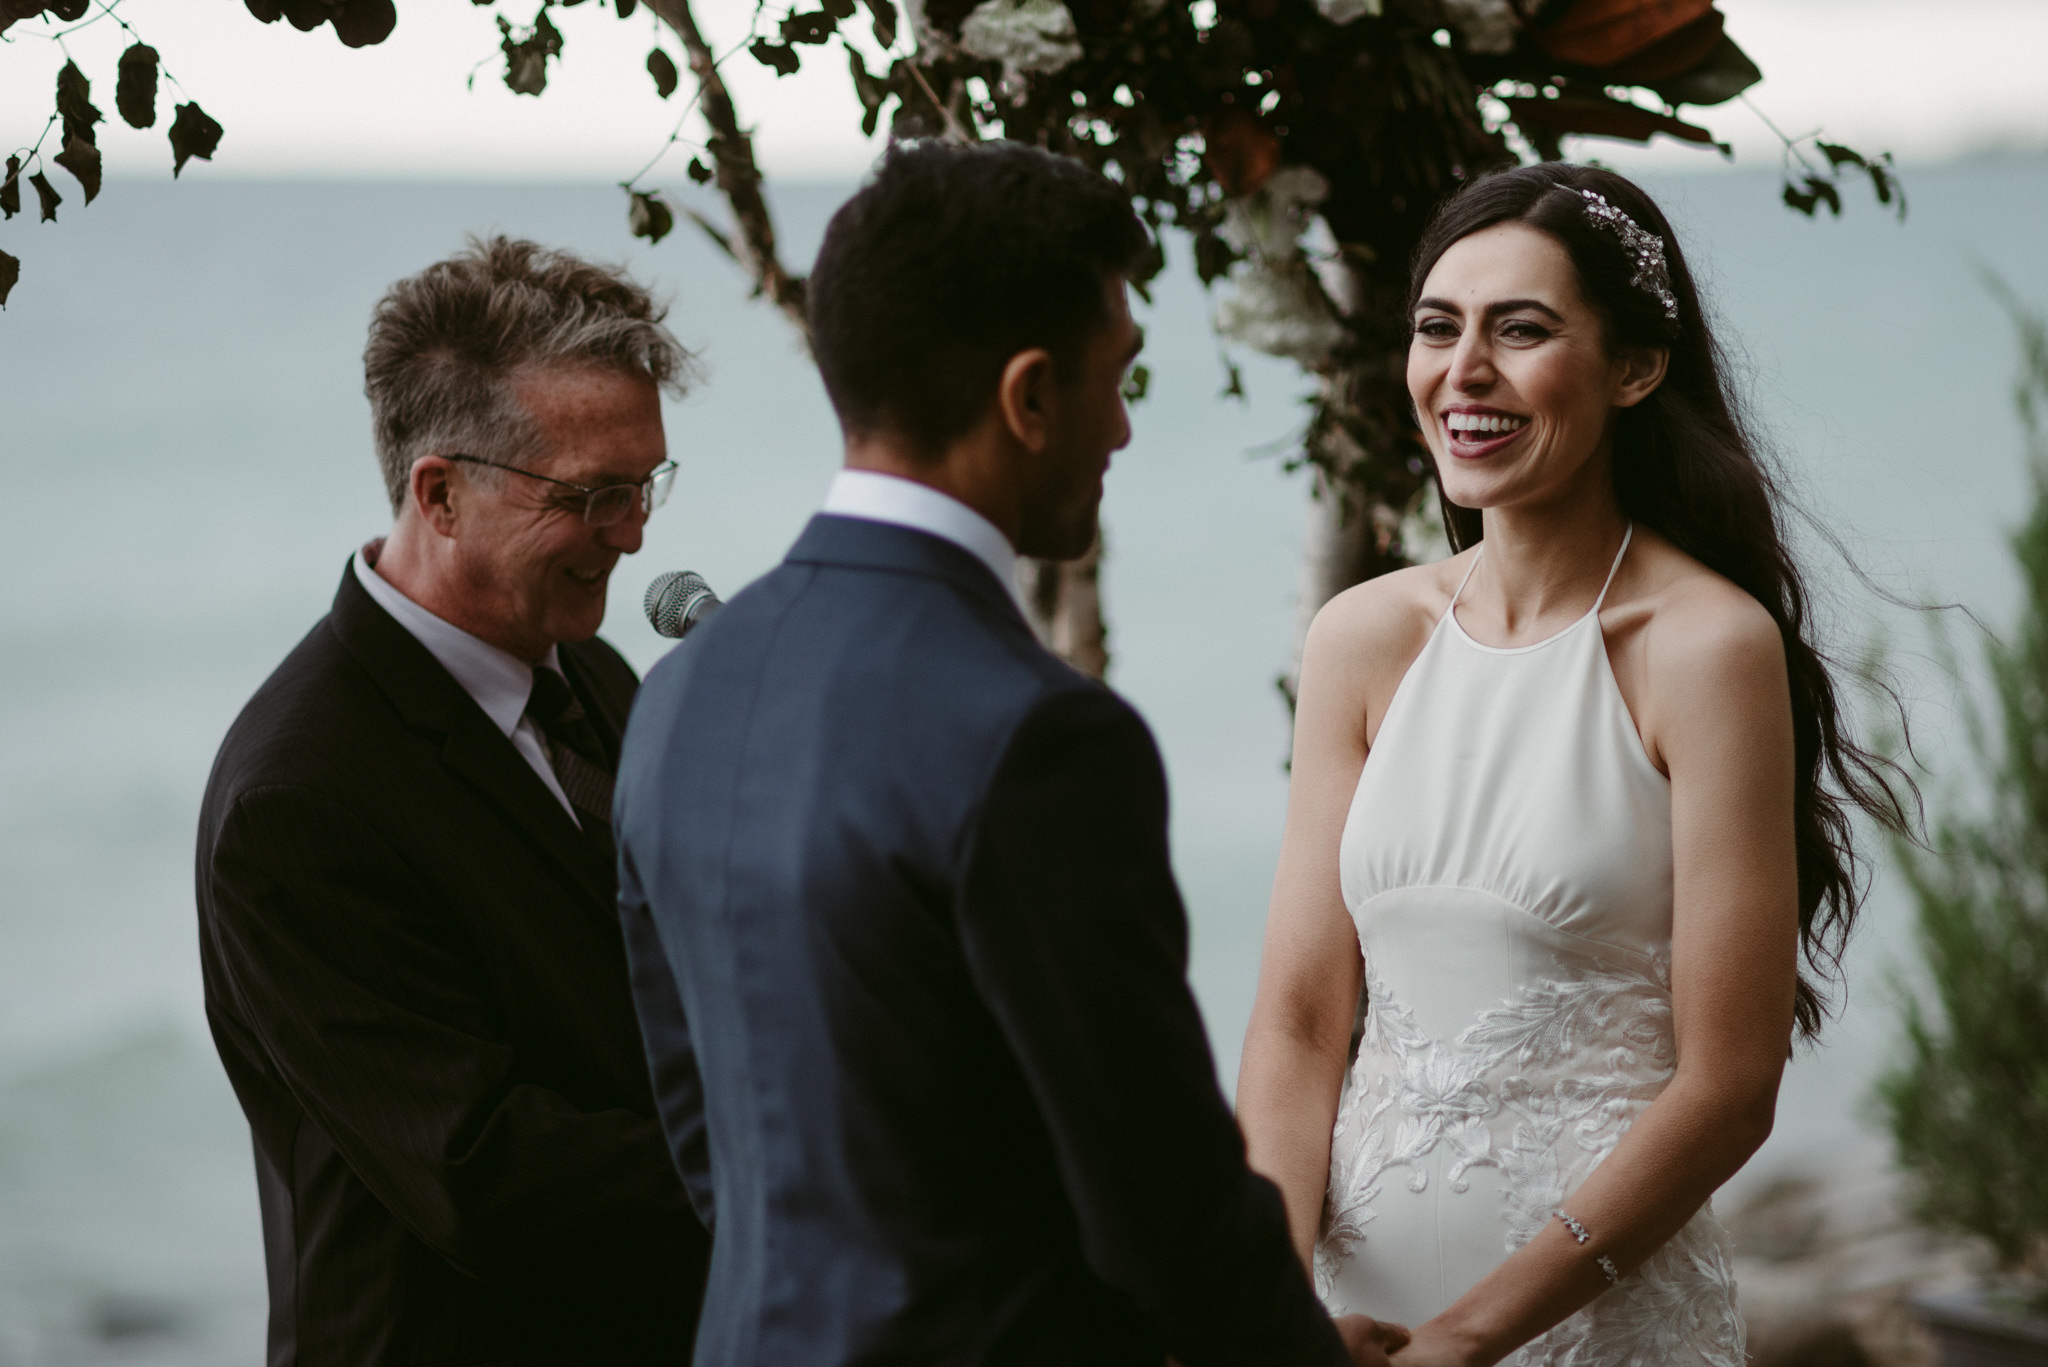 Bride smiling during outdoor wedding ceremony